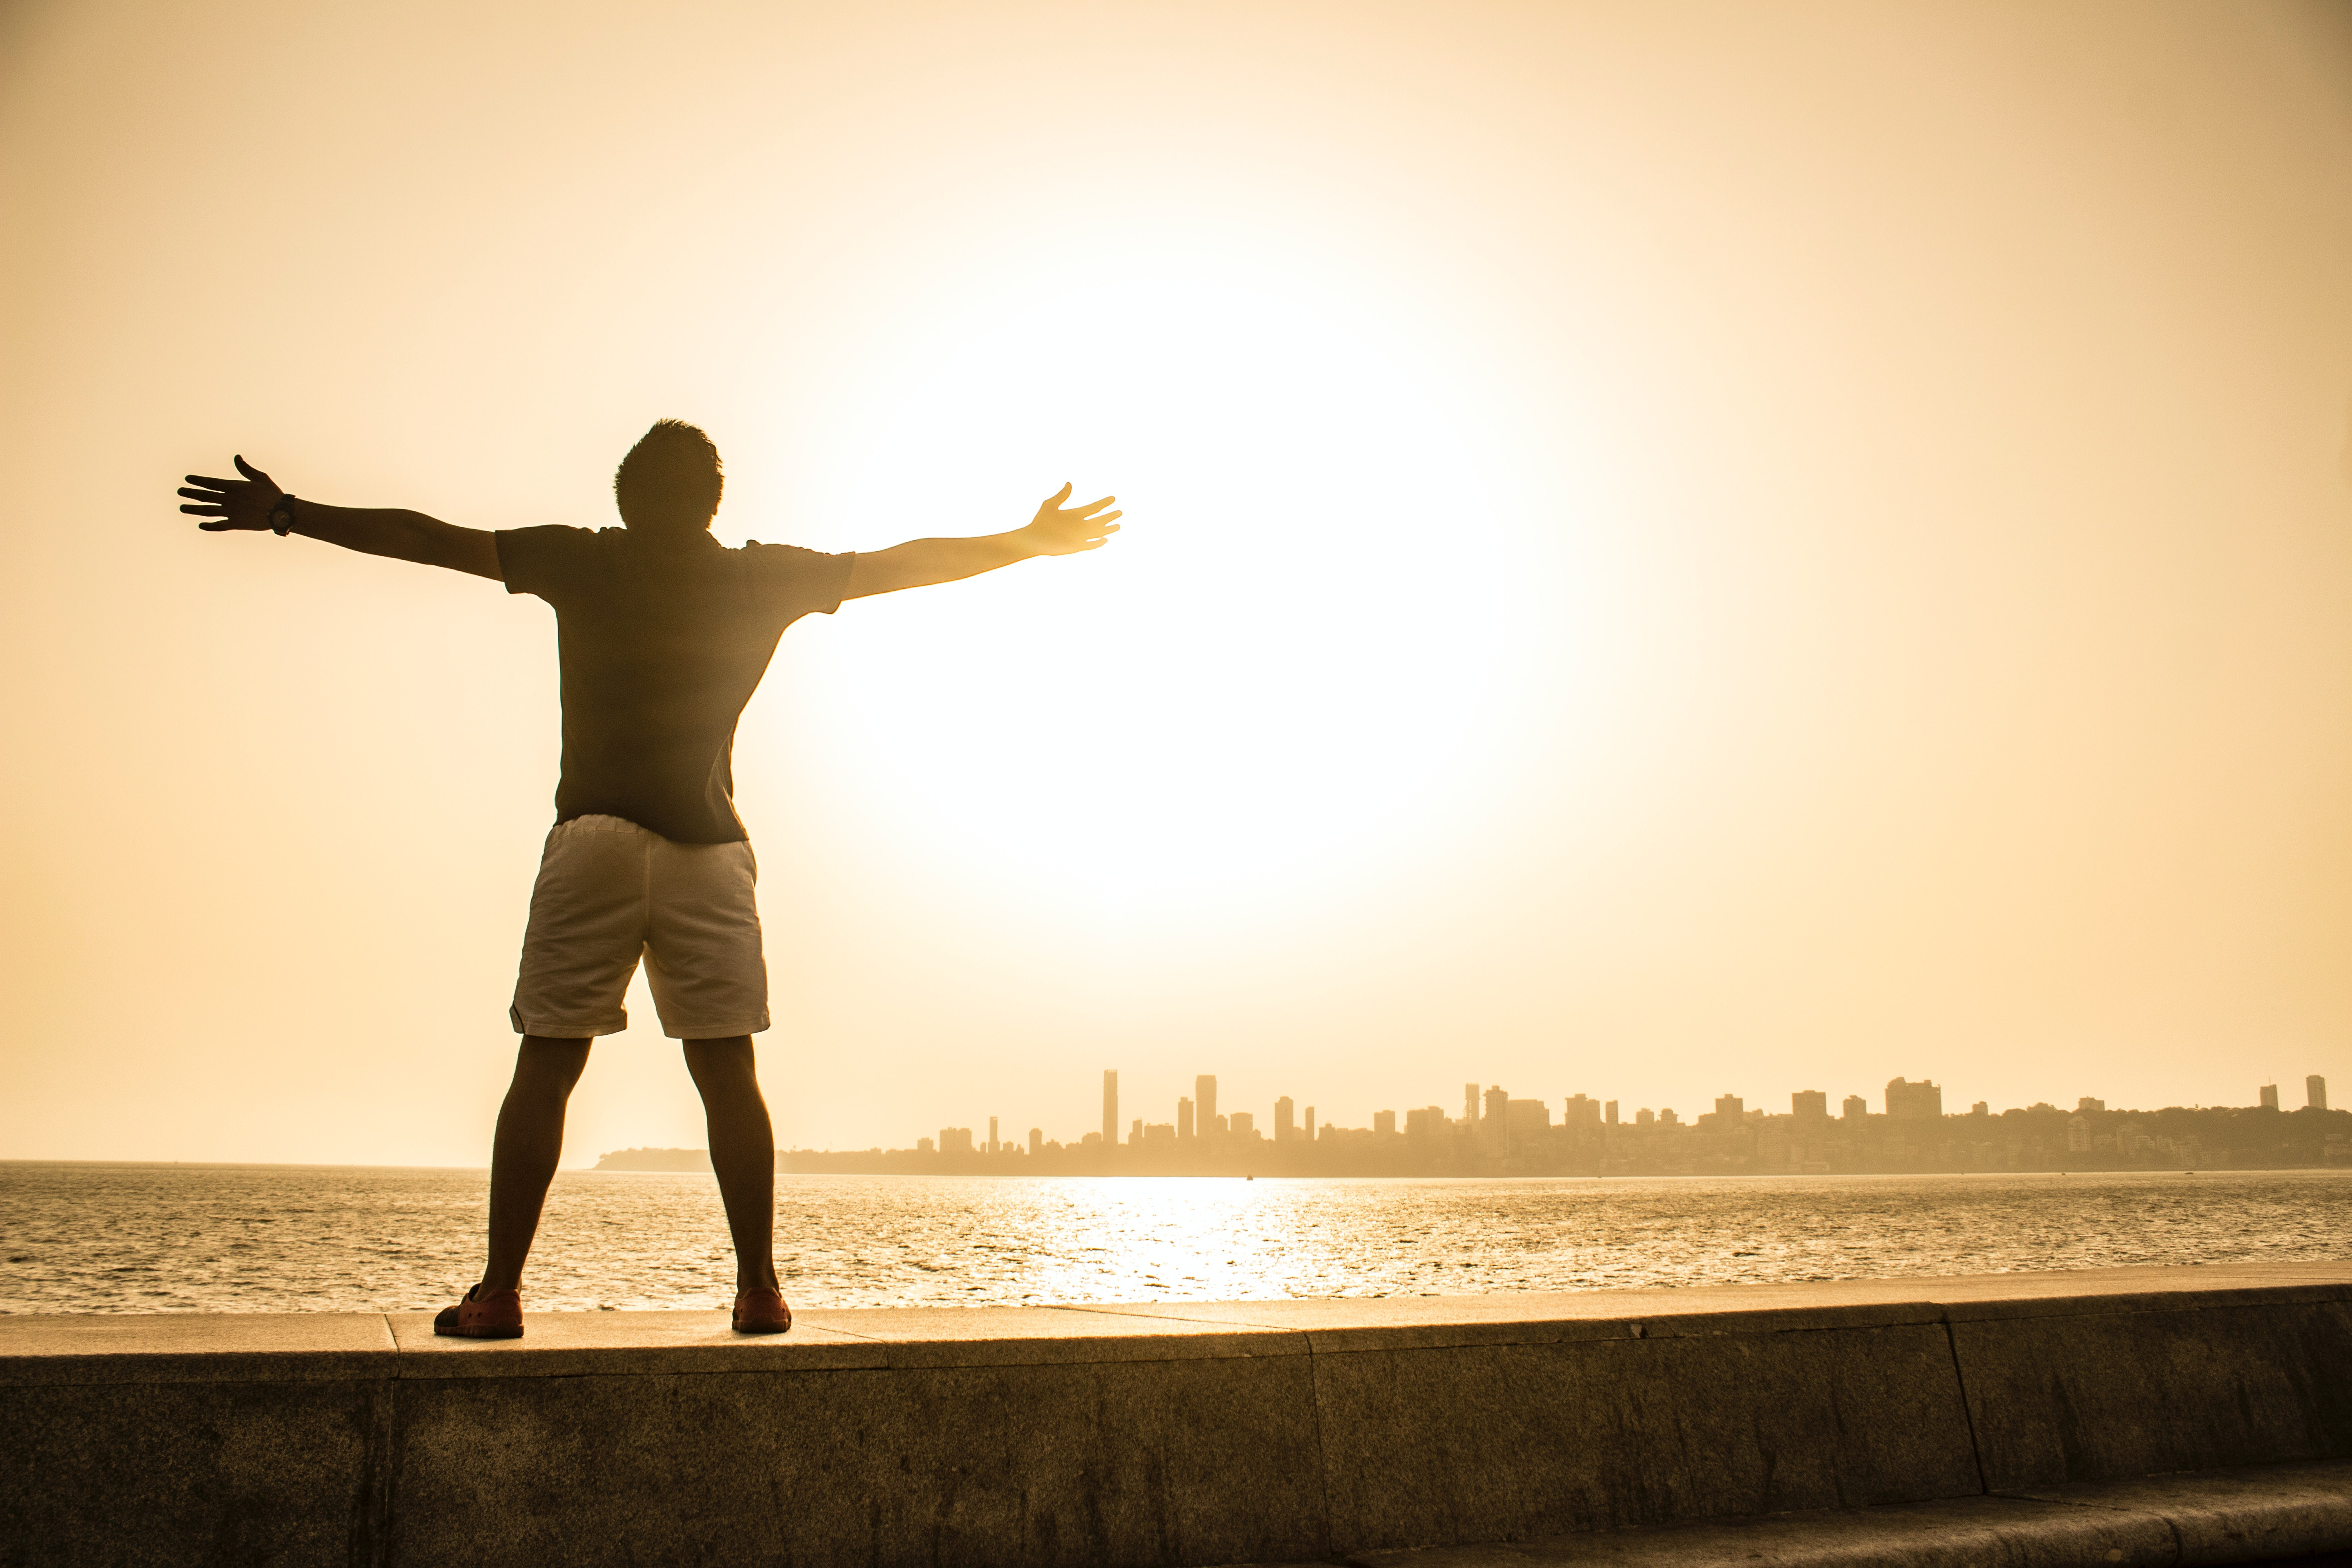 Free Spreading Pics man standing on ledge while spreading arms · free stock photo